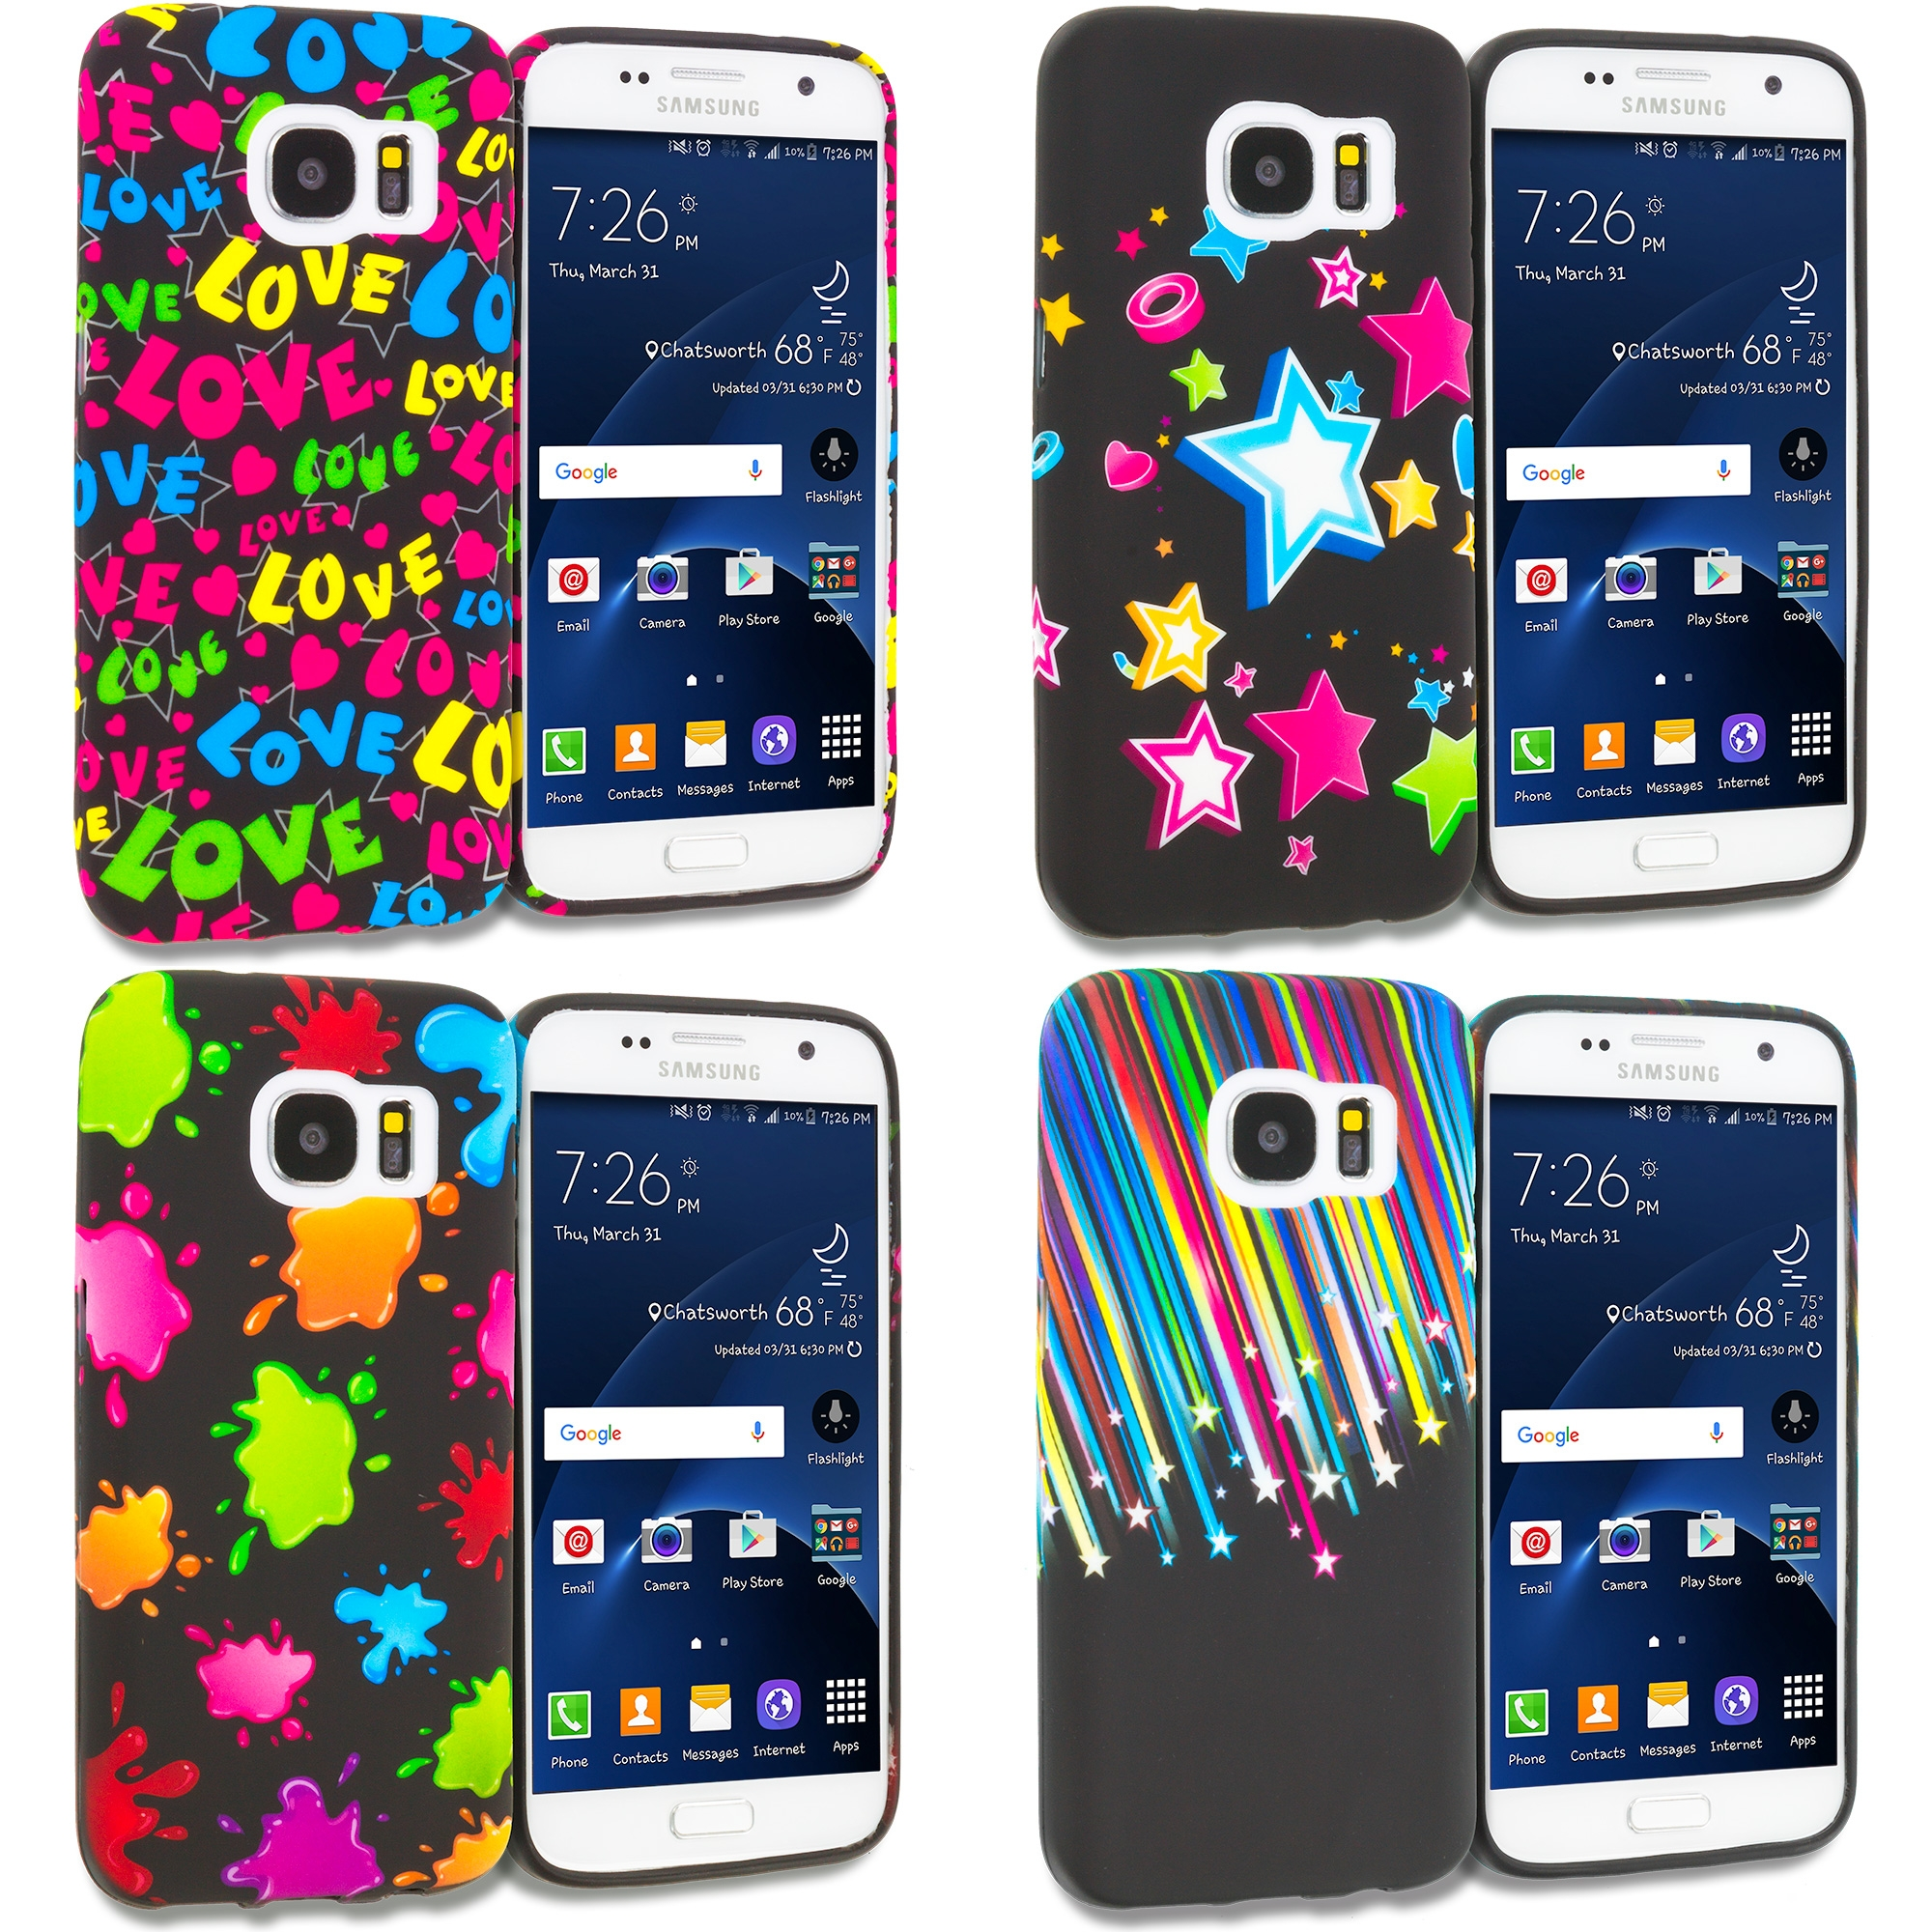 Samsung Galaxy S7 Combo Pack : Colorful Love on Black TPU Design Soft Rubber Case Cover